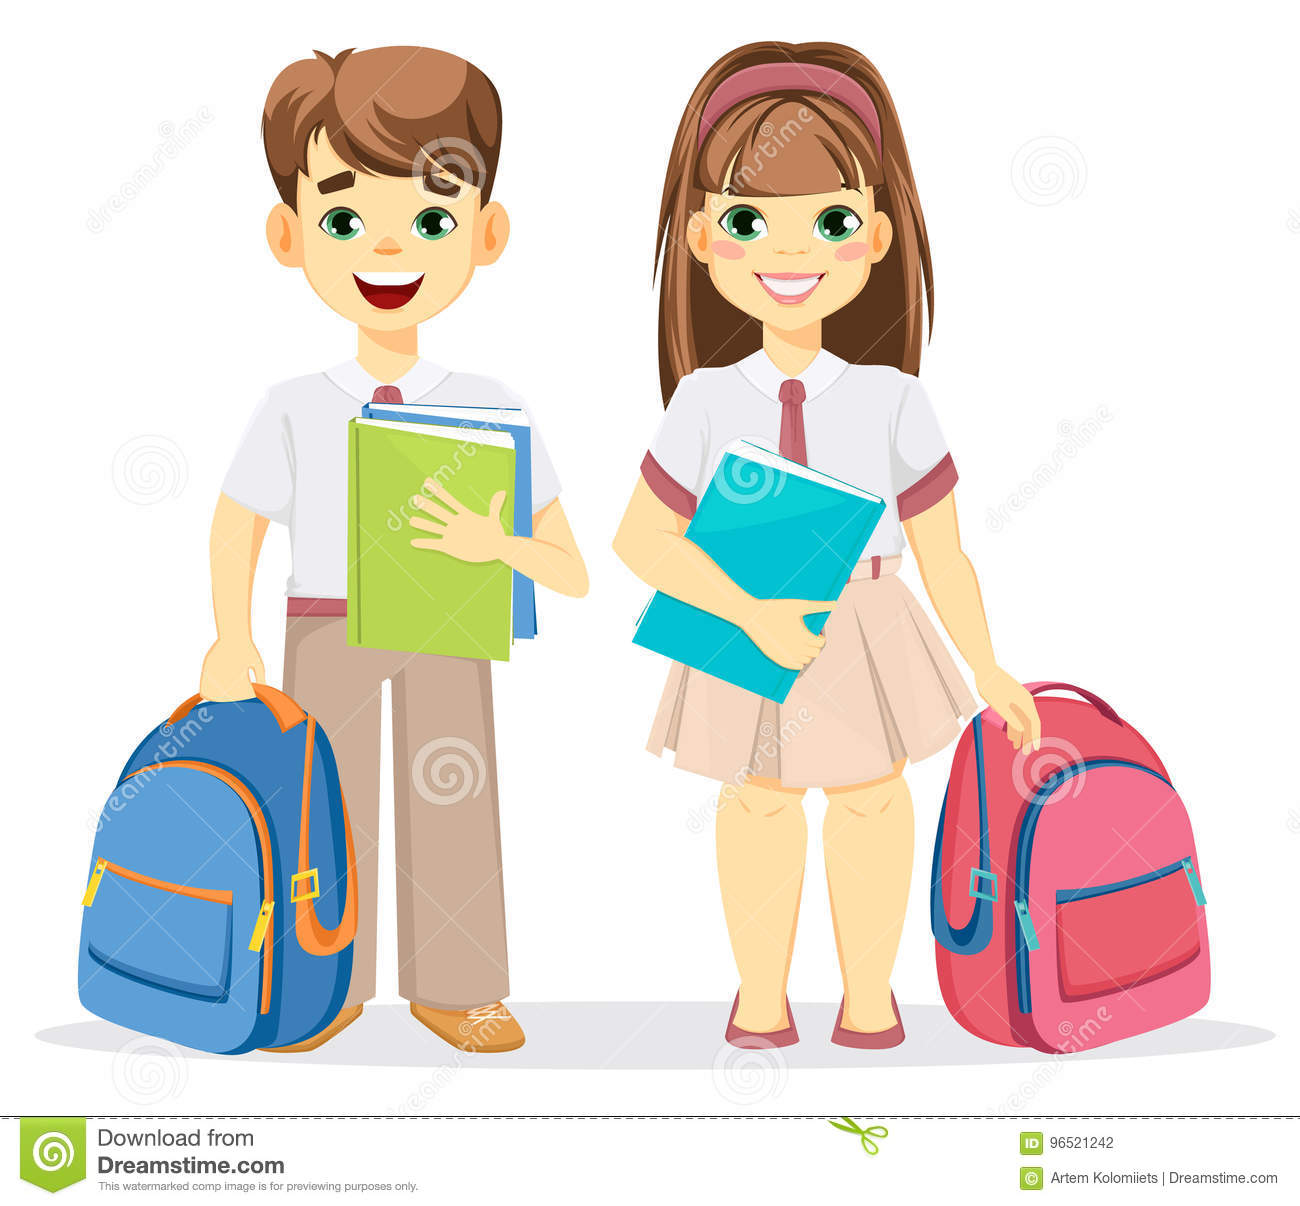 Schoolboy And Schoolgirl With Backpack And Textbooks. Stock Vector ... c79bd9b2a1516